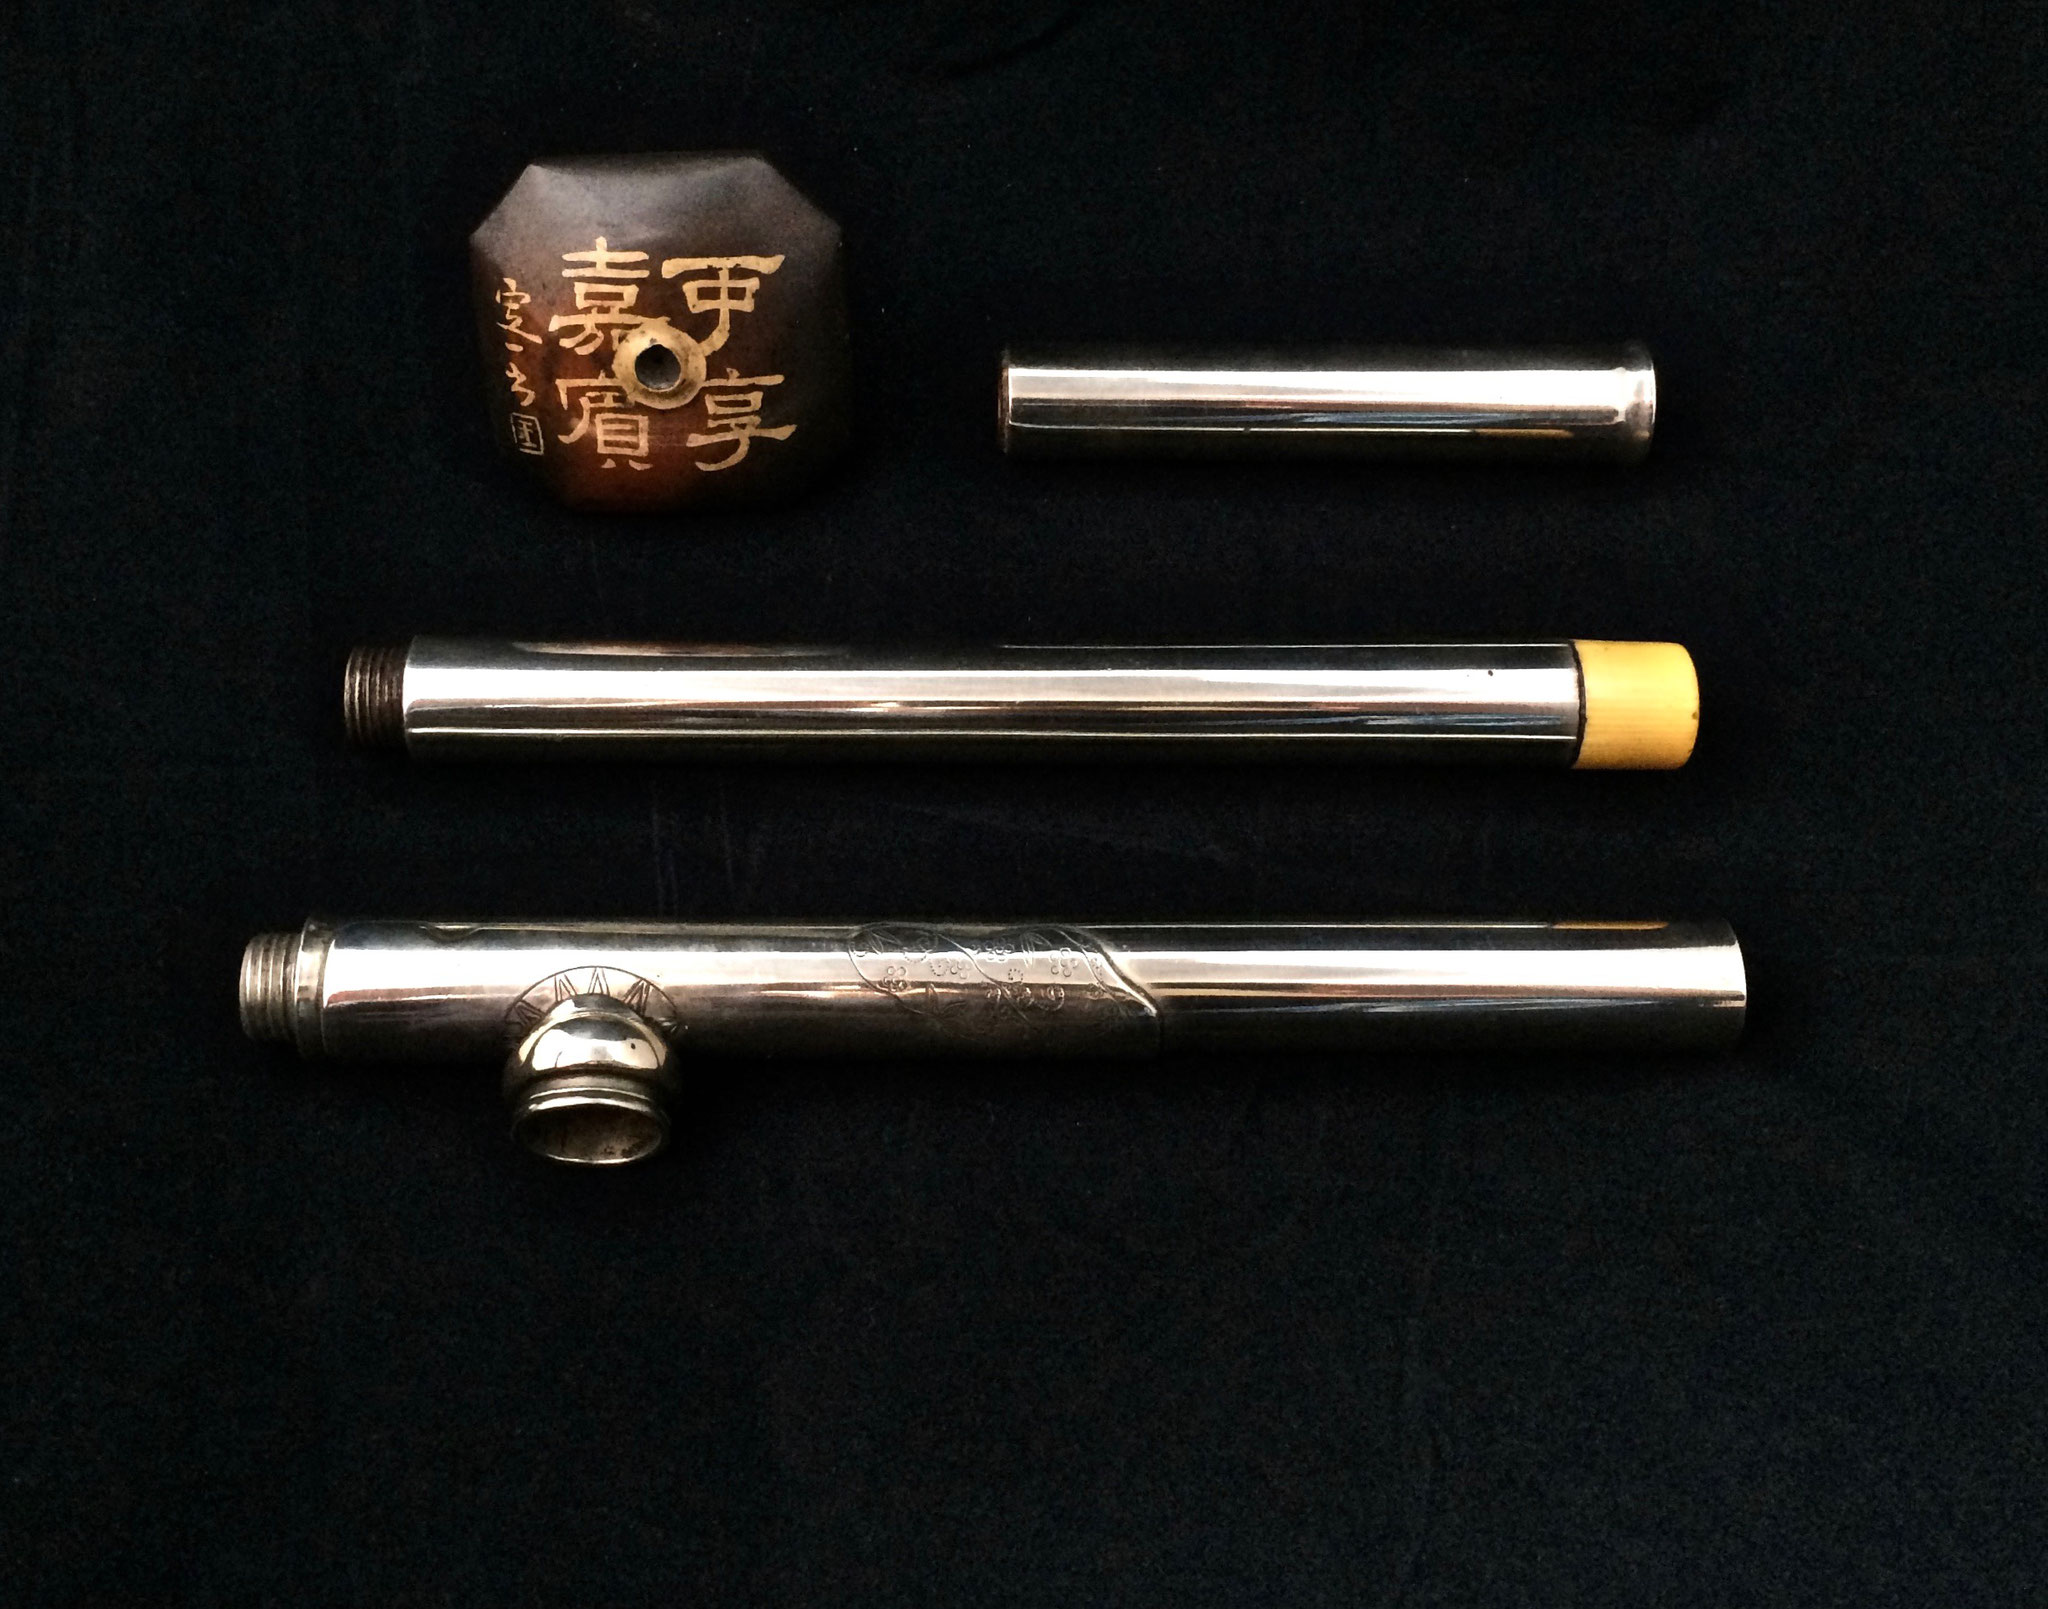 Paktong travel opium pipe (–> Pipes)